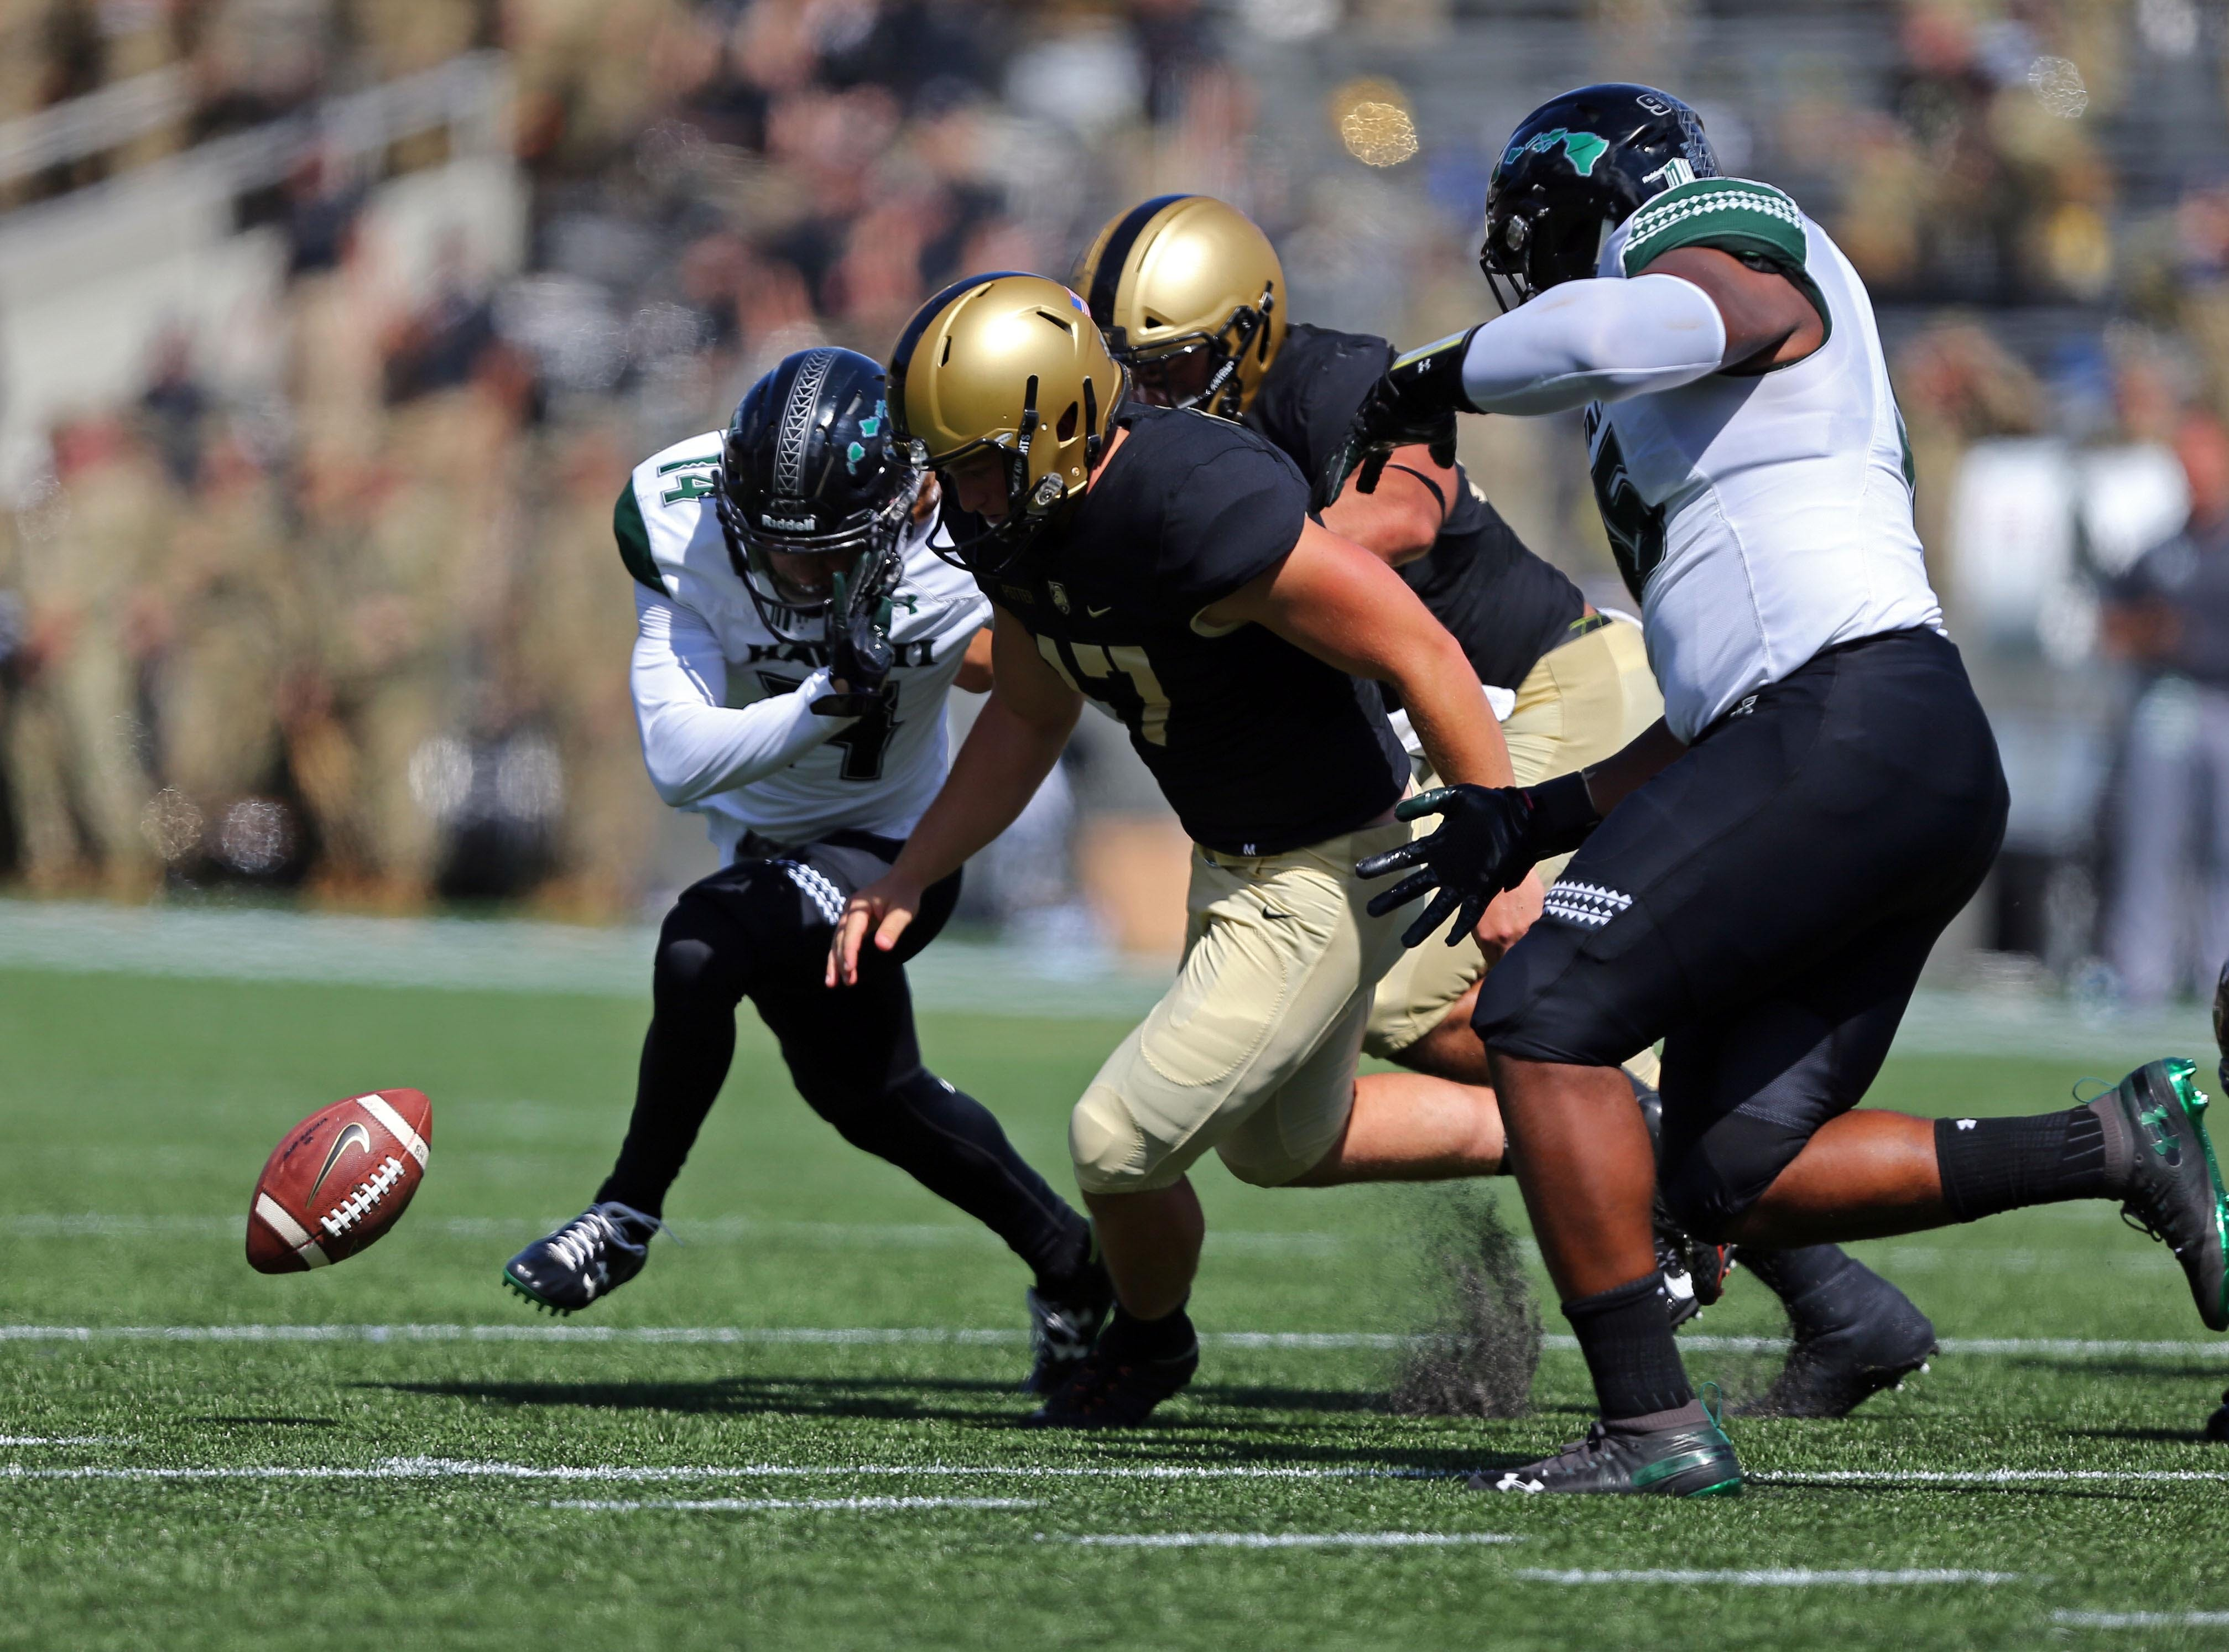 Army Black Knights punter Zach Potter (17) chases after the ball after Hawaii Rainbow Warriors defensive back Manu Hudson-Rasmussen (14) blocked a field goal during the first half at Michie Stadium.